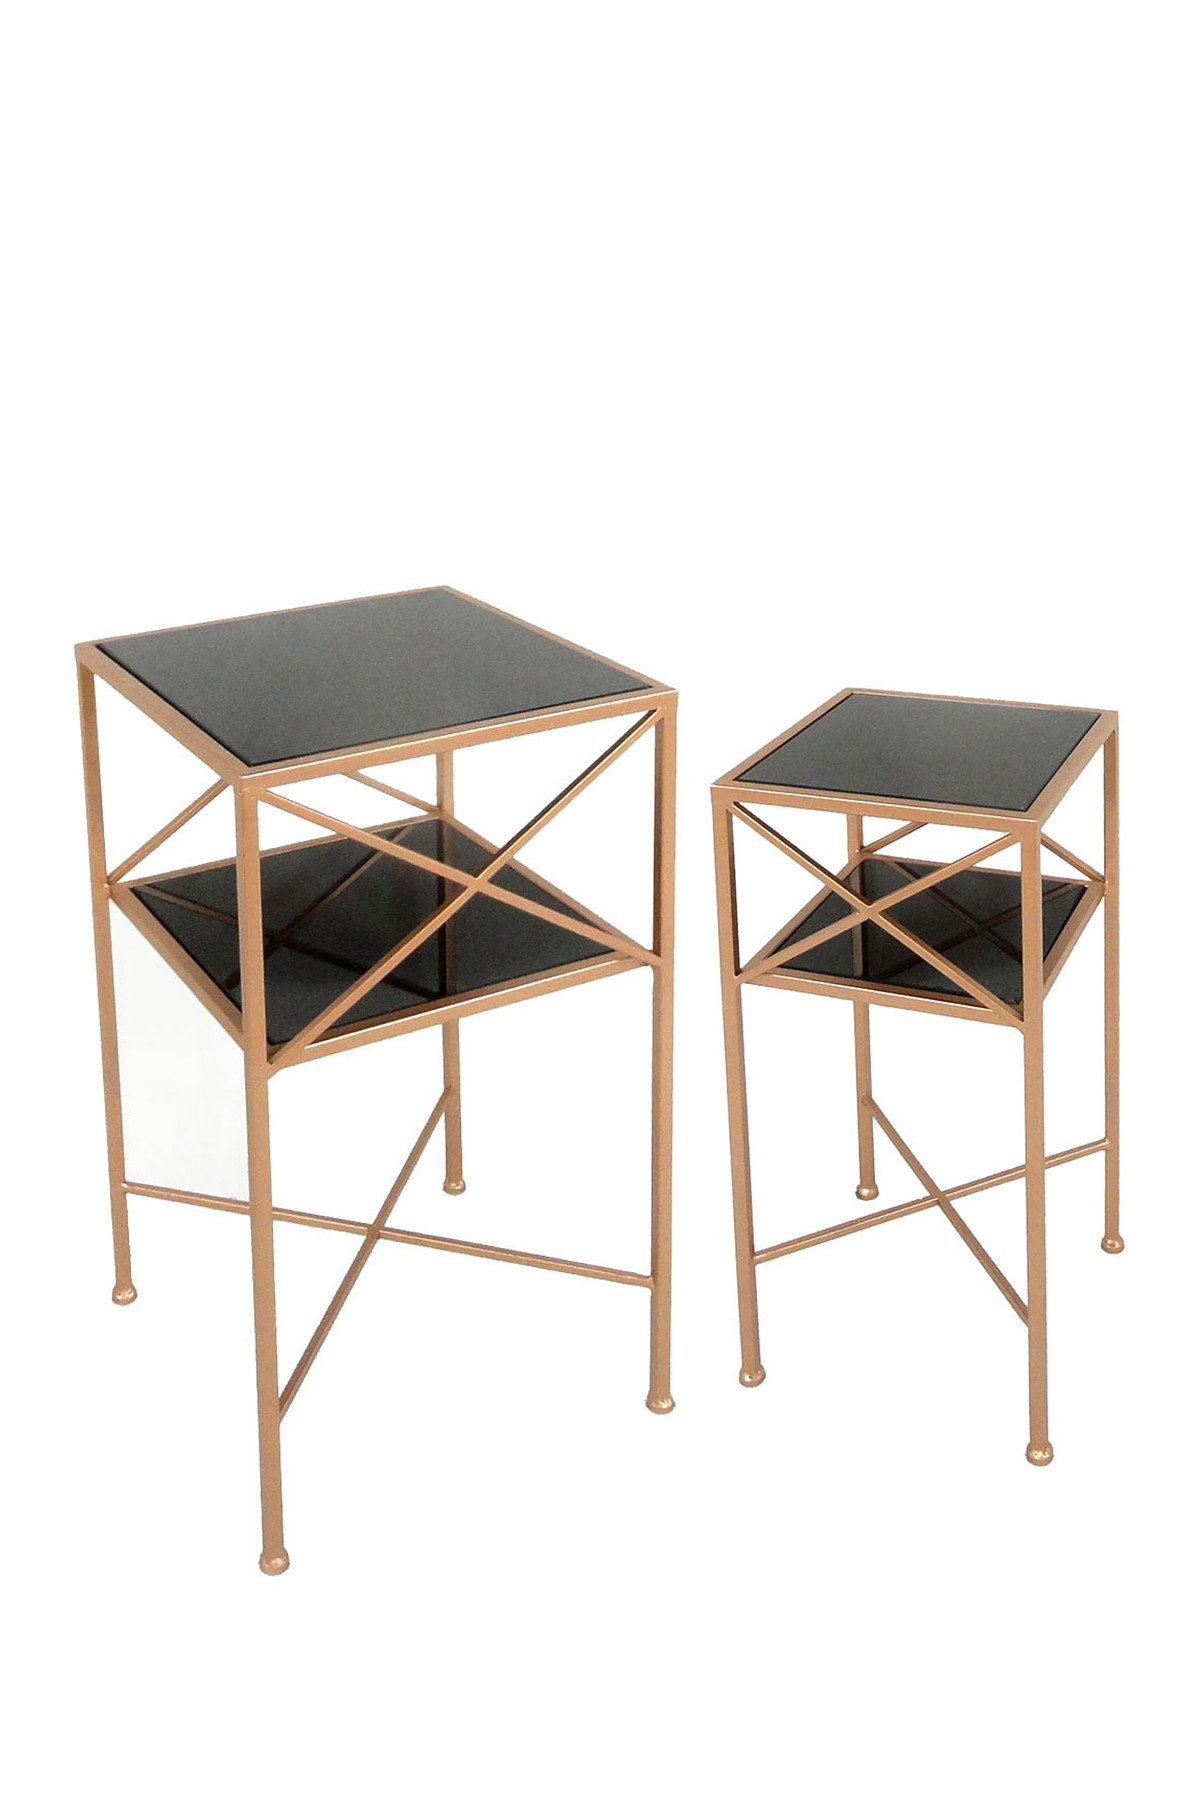 sagebrook home copper black metal mirror accent tables set table and kitchen with wine rack mid century modern dining chairs small glass top foyer furniture pieces pottery barn